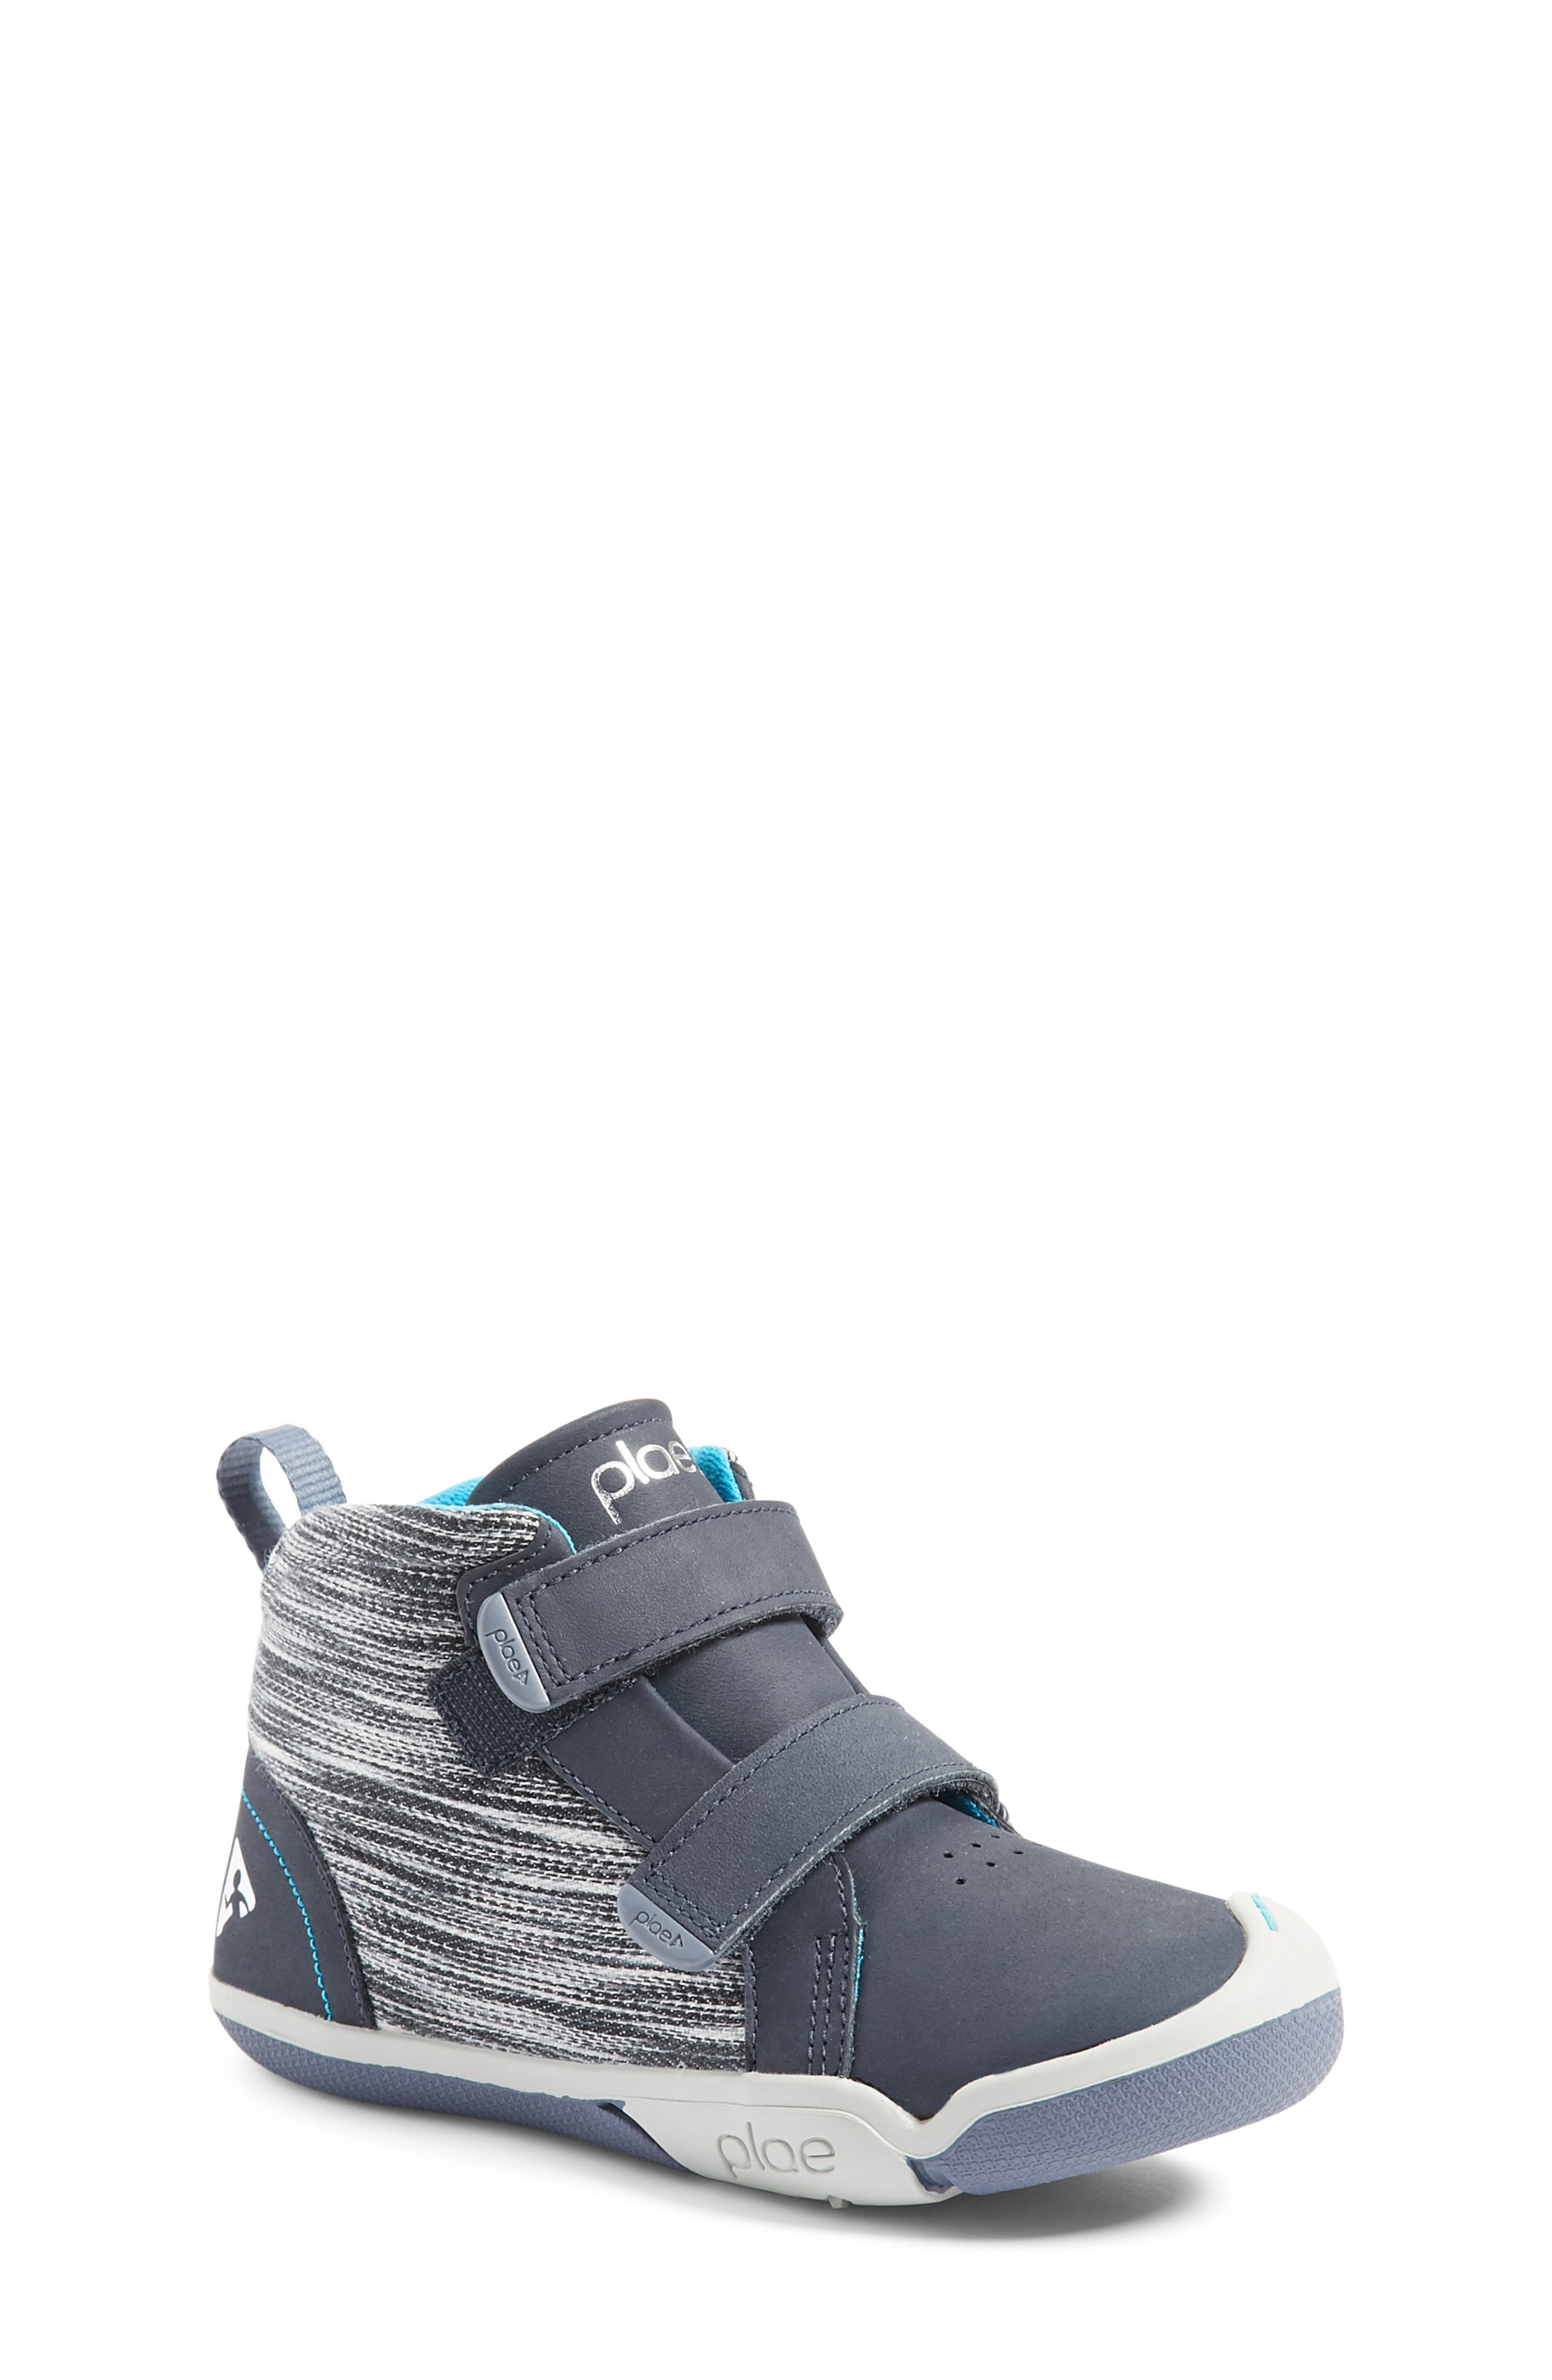 Max Customizable High Top Sneaker,                             Alternate thumbnail 4, color,                             LEATHER WIND